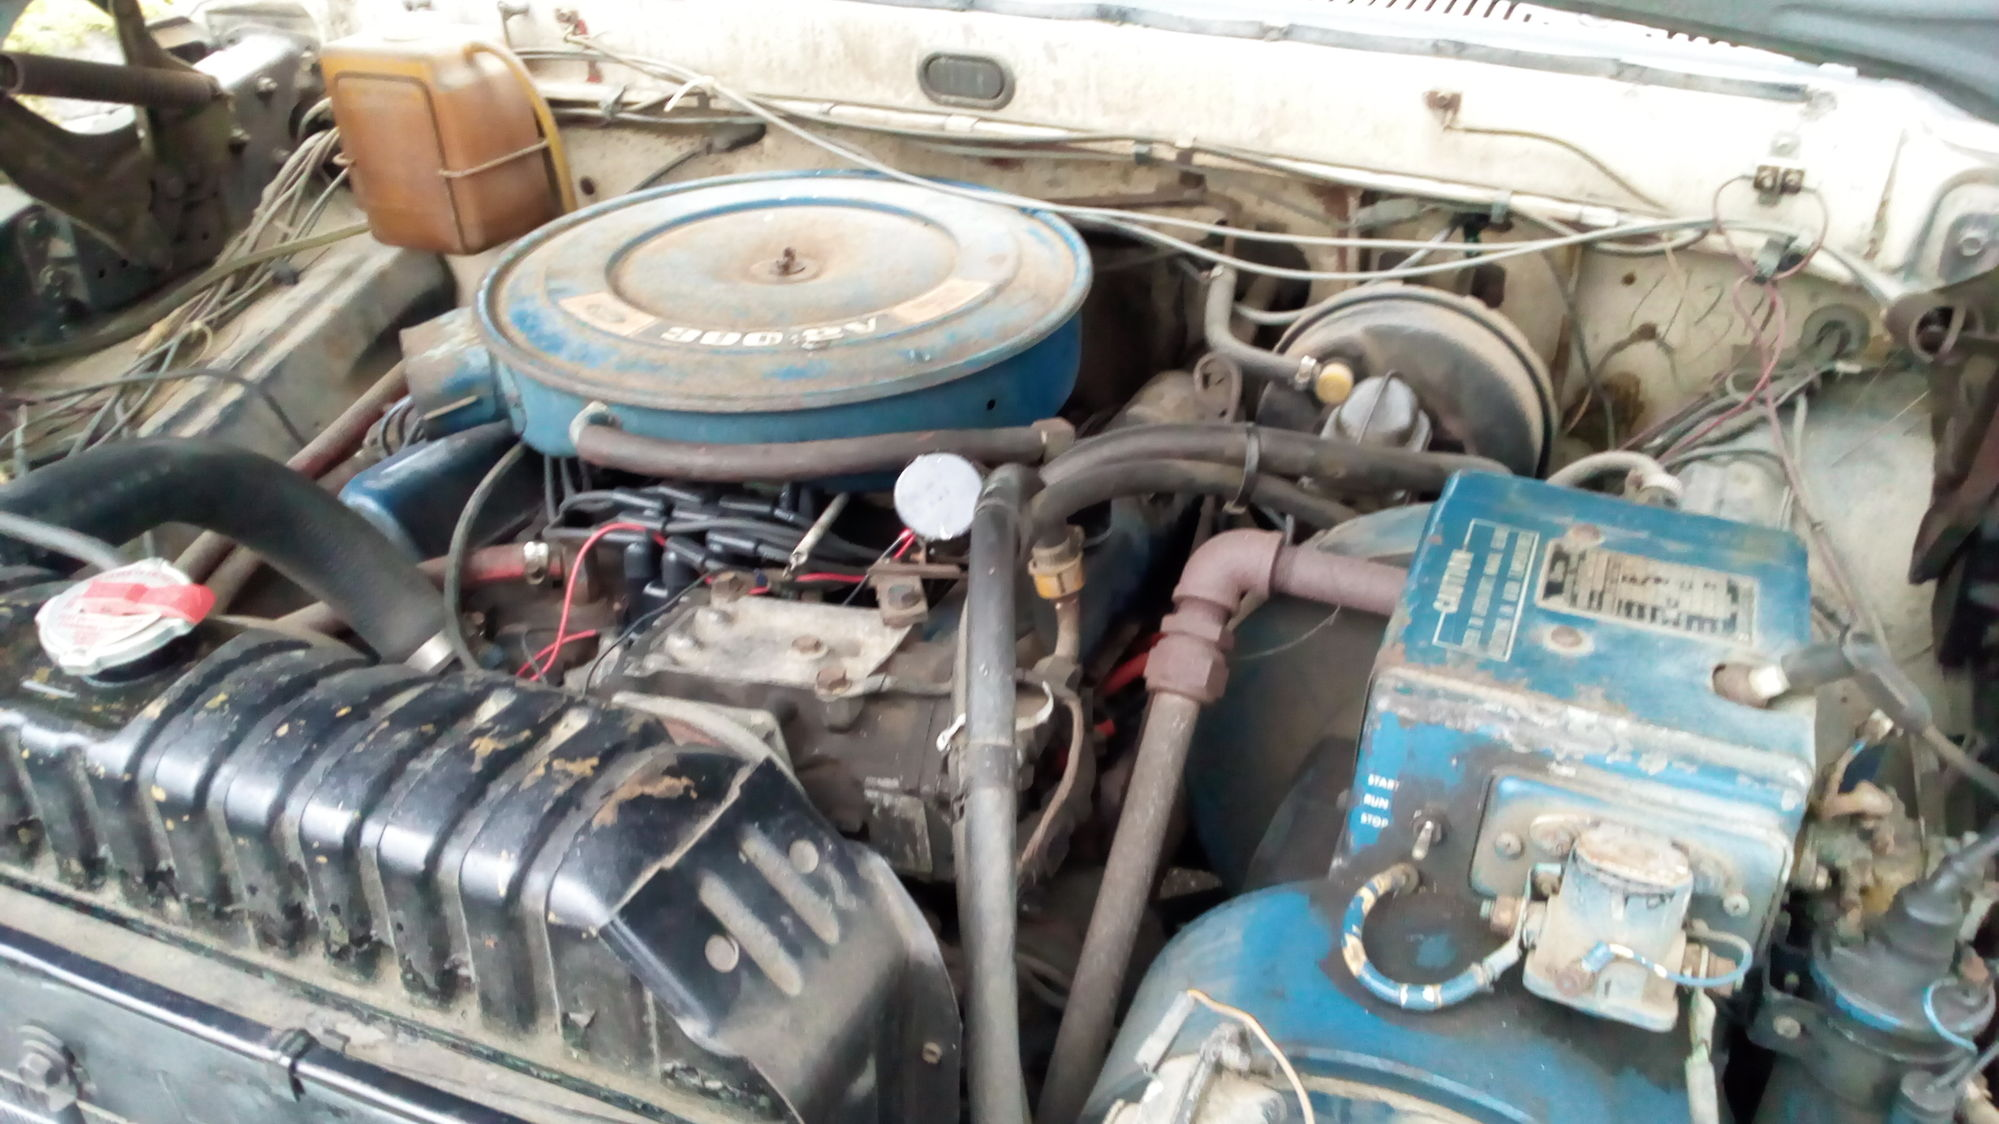 Good wheels and tires factory install camping generator radio motor runs and transmission shifts and stays in all gears work however gasket needs to be